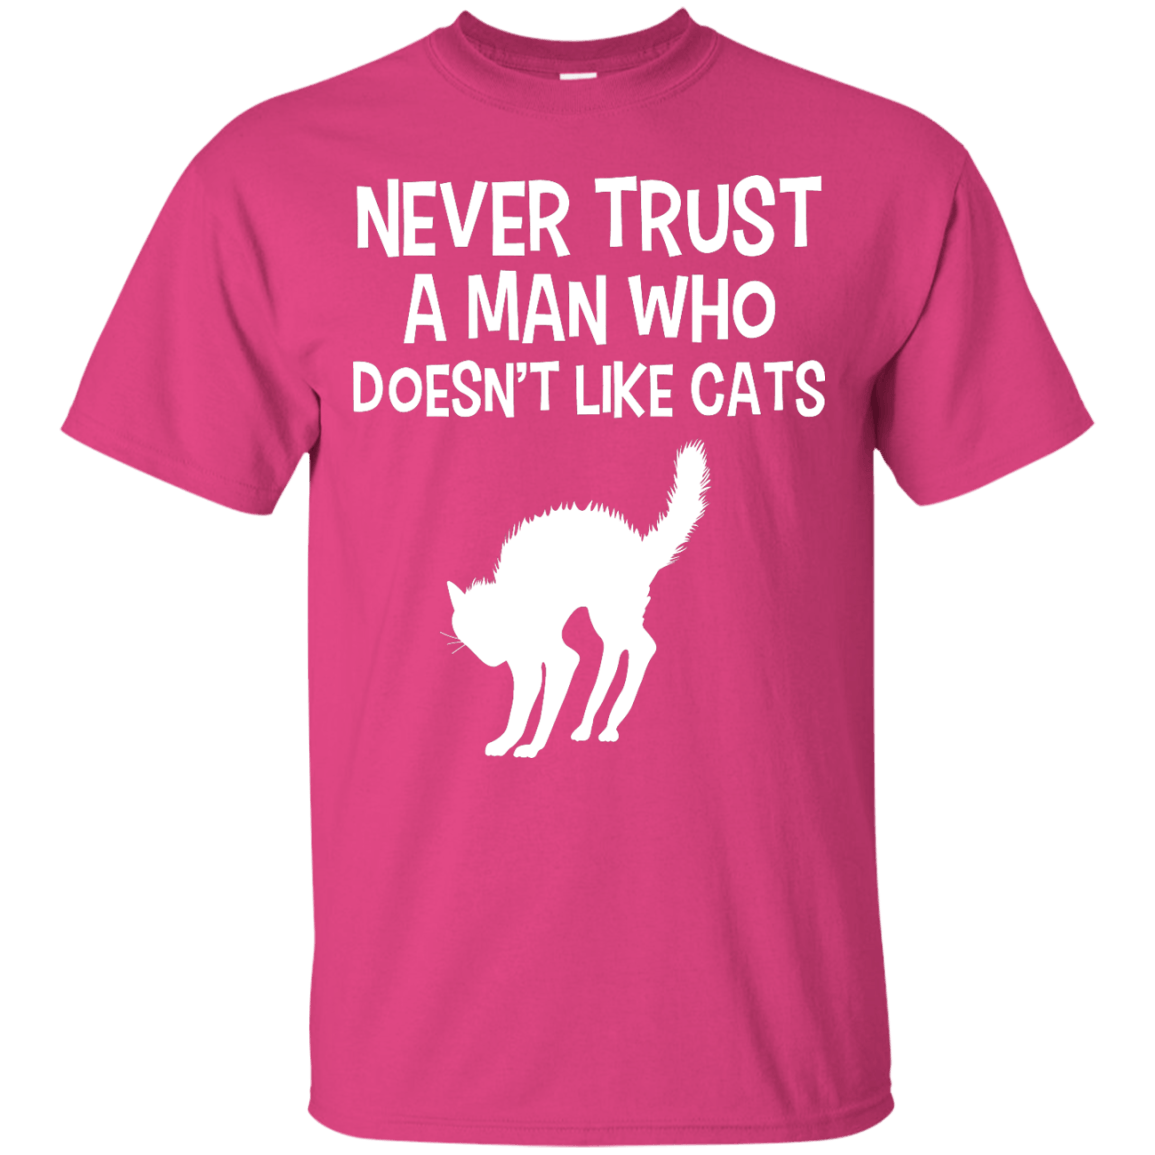 A Man Who Doesn't Like Cats - ONLINEPRESALES